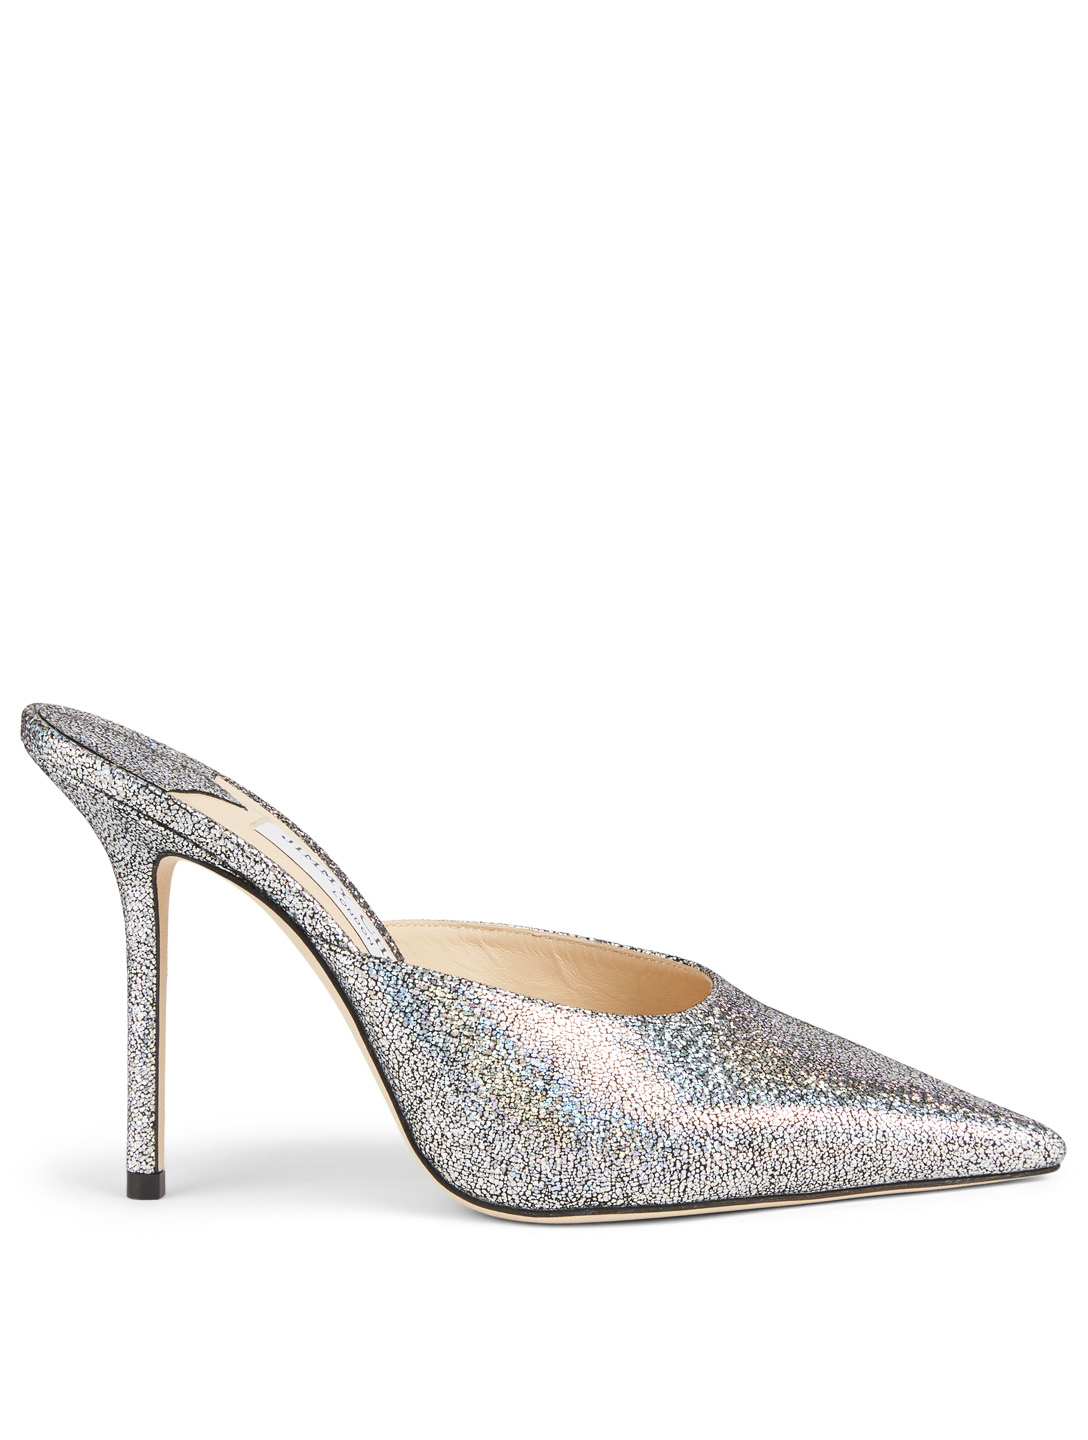 JIMMY CHOO Rav 100 Metallic Leather Mules Women's Multi